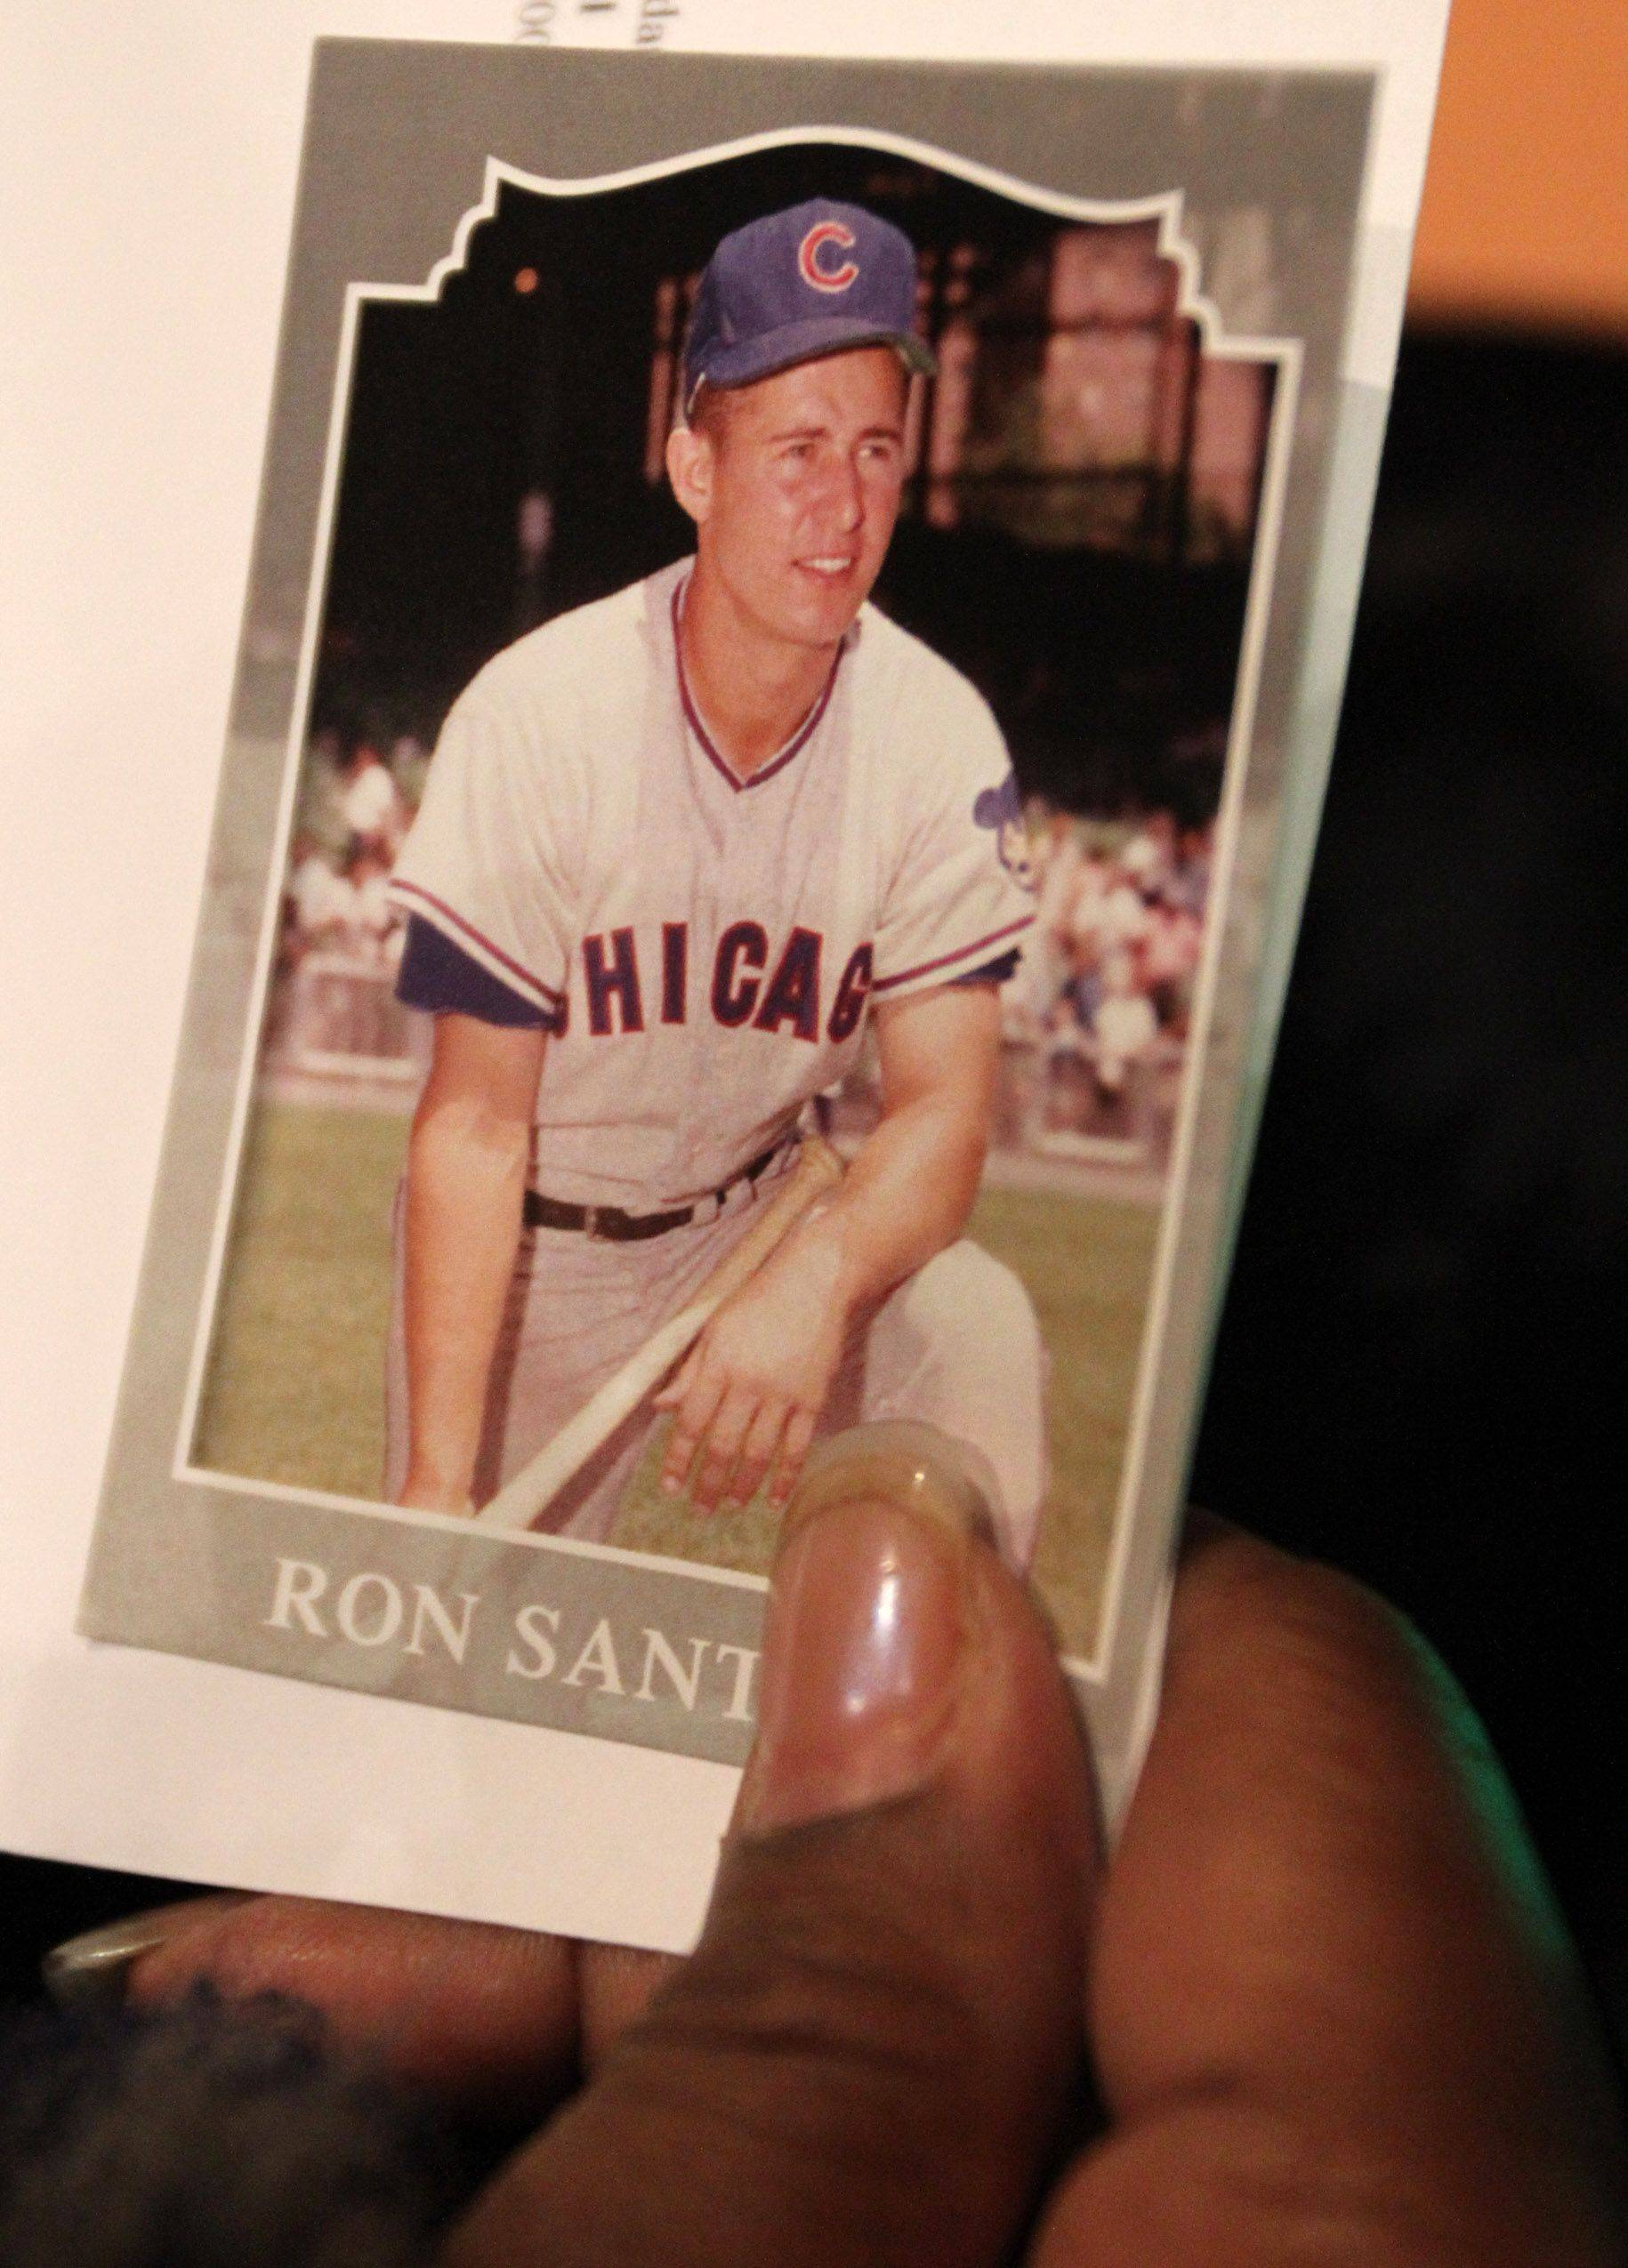 Chicago Cubs fan Babette Peyton of Chicago holds a Ron Santo baseball card given to her at the public visitation for Chicago Cubs legend Ron Santo.